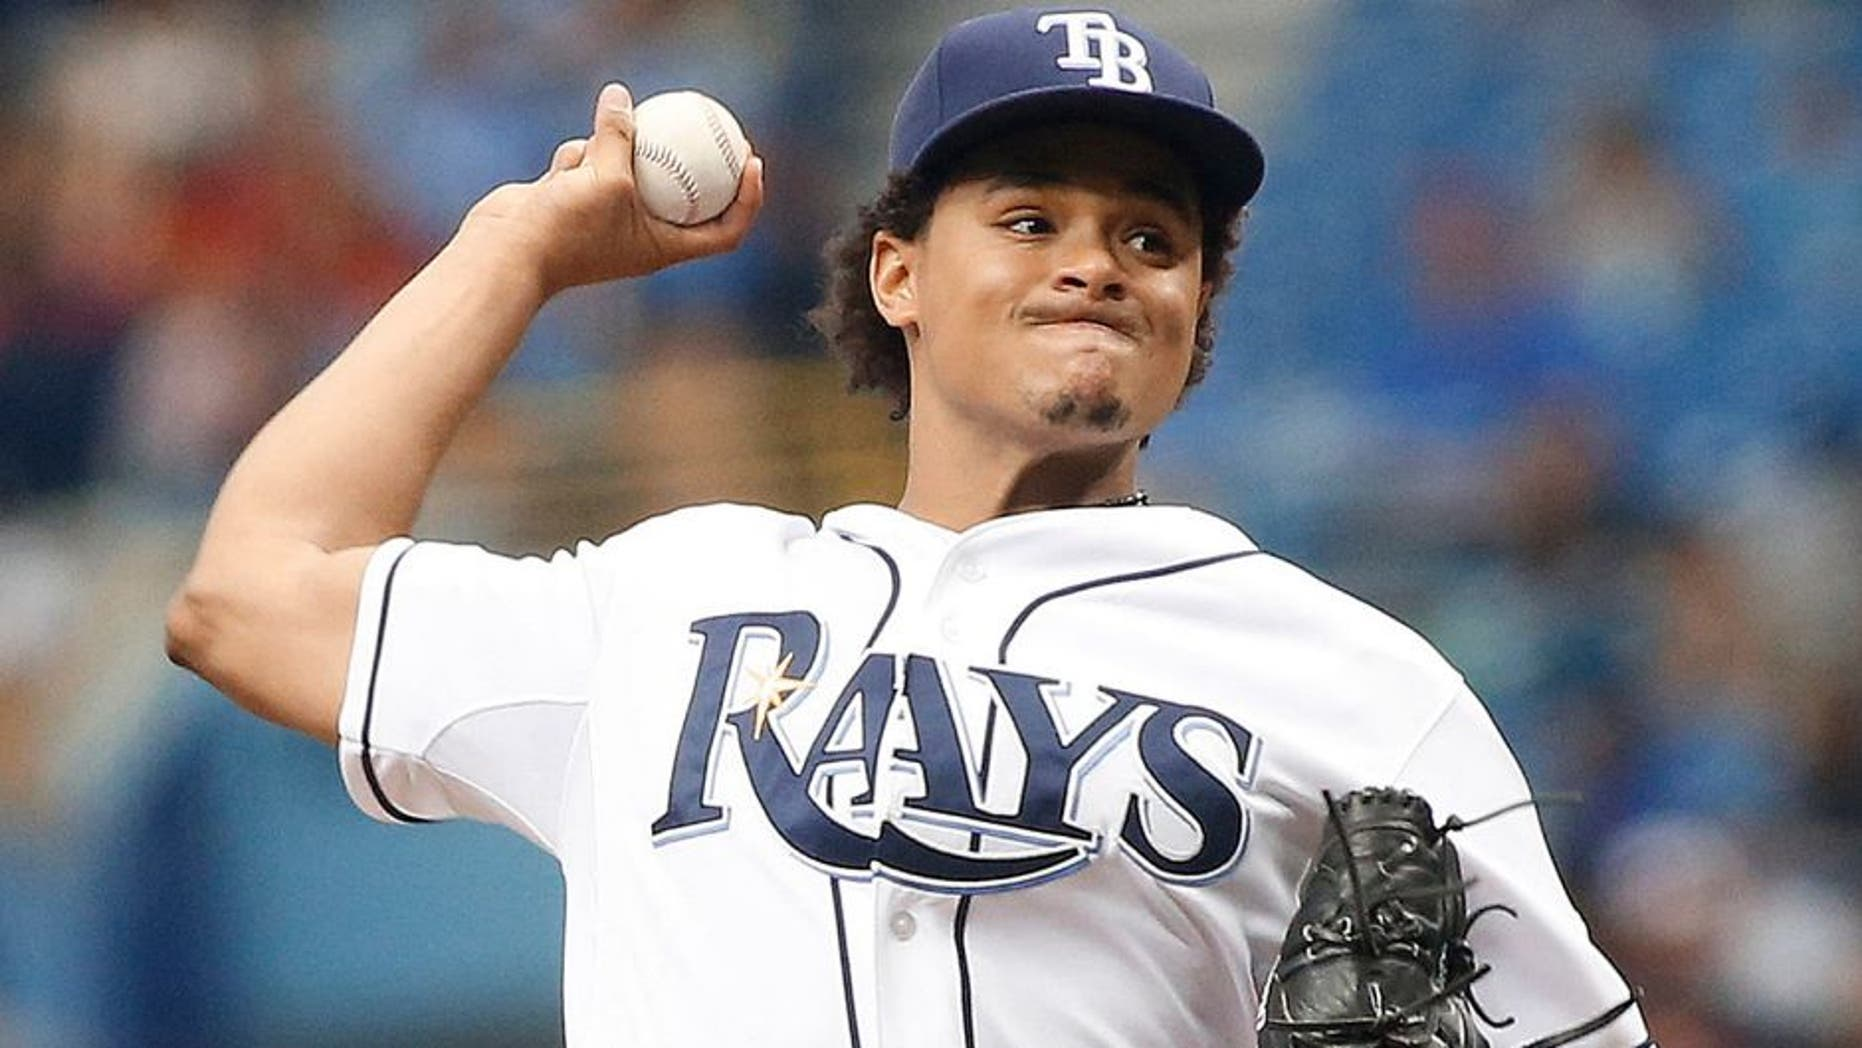 ST. PETERSBURG, FL - JULY 29: Chris Archer #22 of the Tampa Bay Rays pitches during the first inning of a game against the Detroit Tigers on July 29, 2015 at Tropicana Field in St. Petersburg, Florida. (Photo by Brian Blanco/Getty Images)